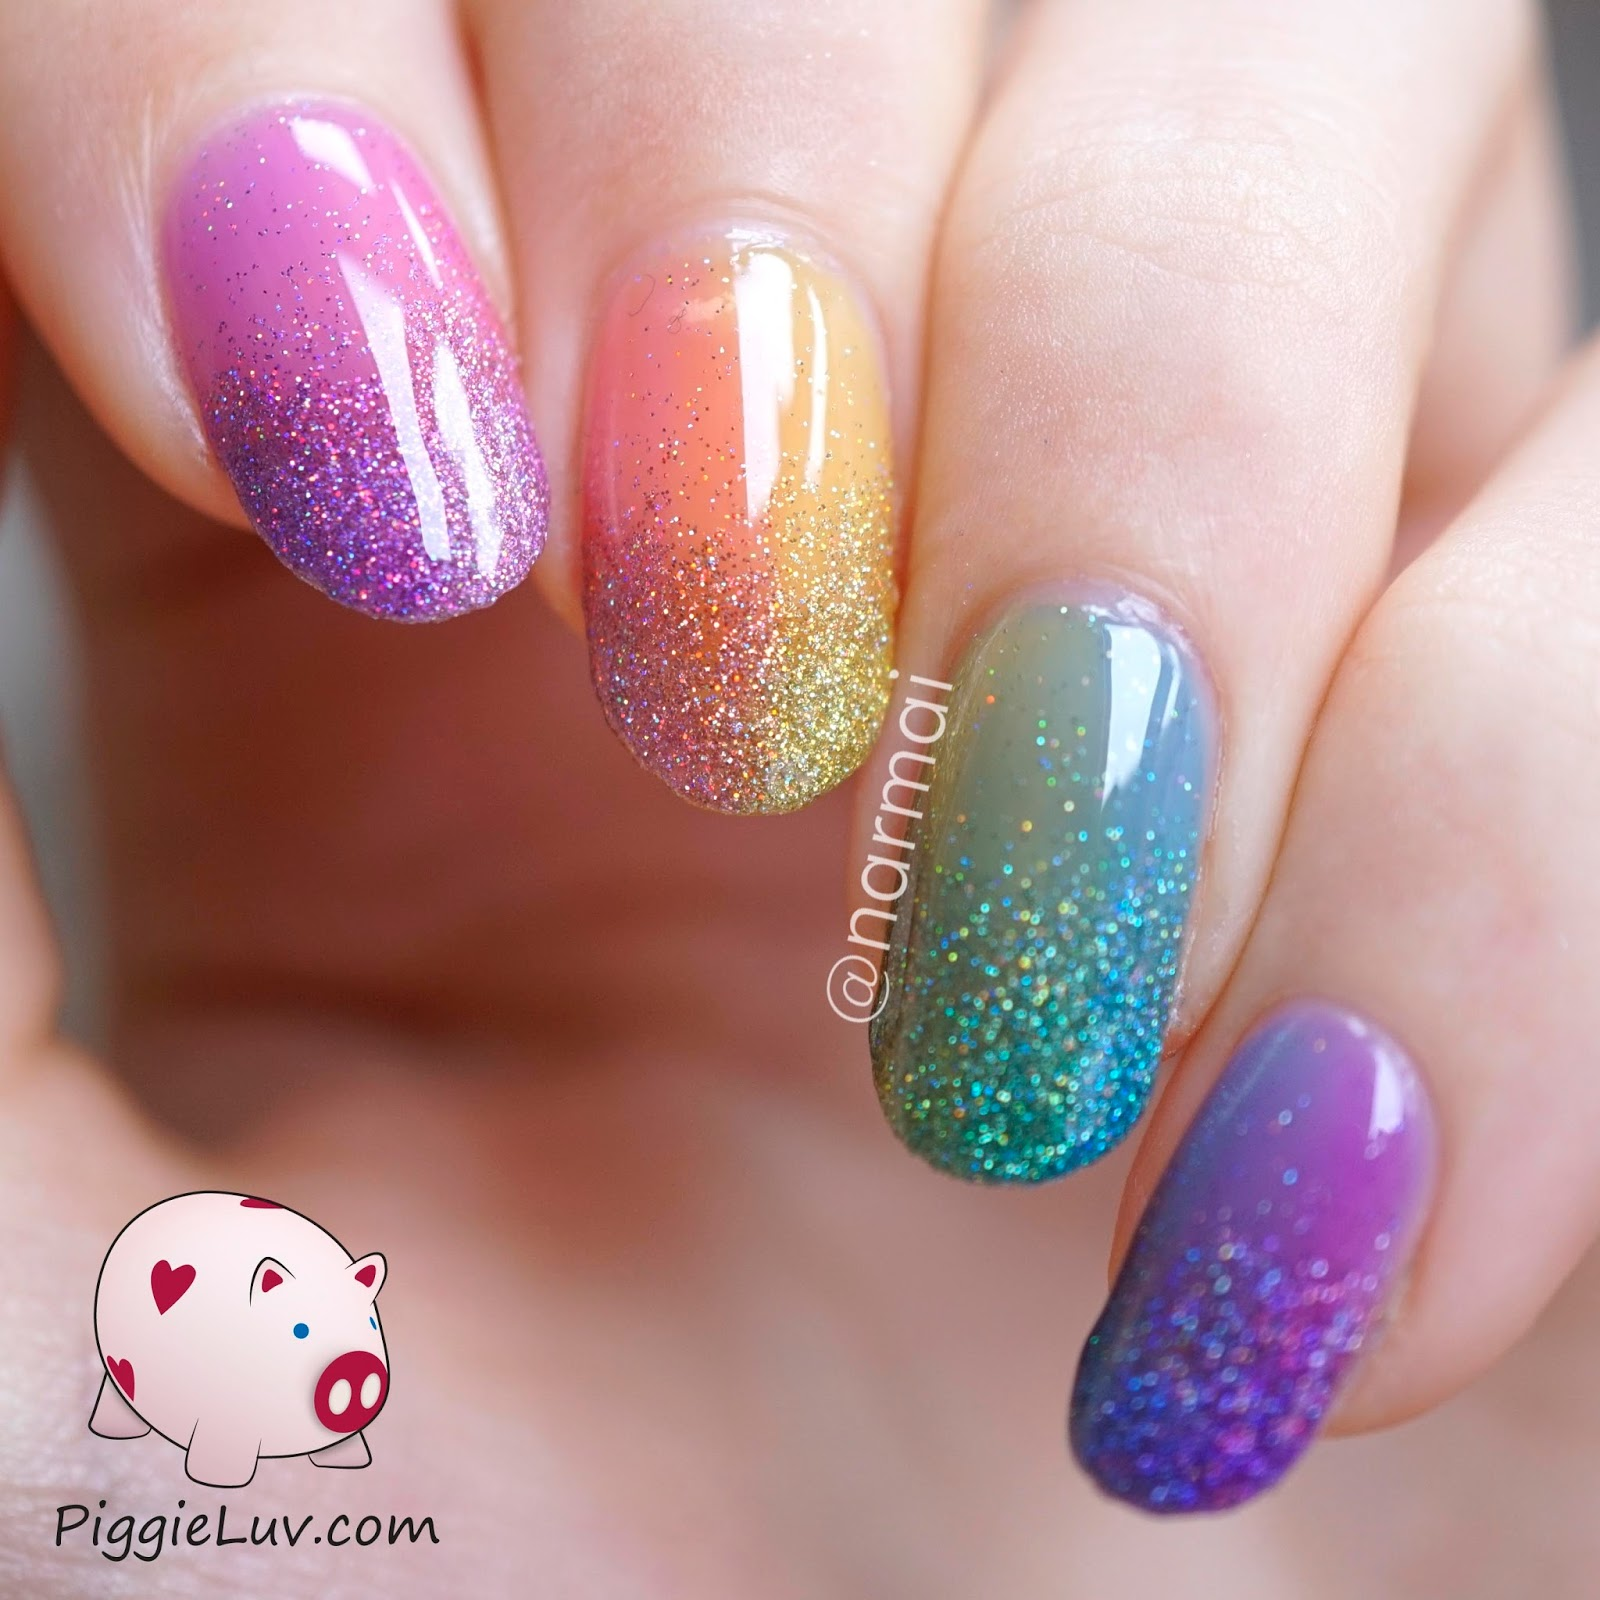 Glitter Nail Art Ideas: PiggieLuv: Double Gradient Glitter Rainbow Nail Art With